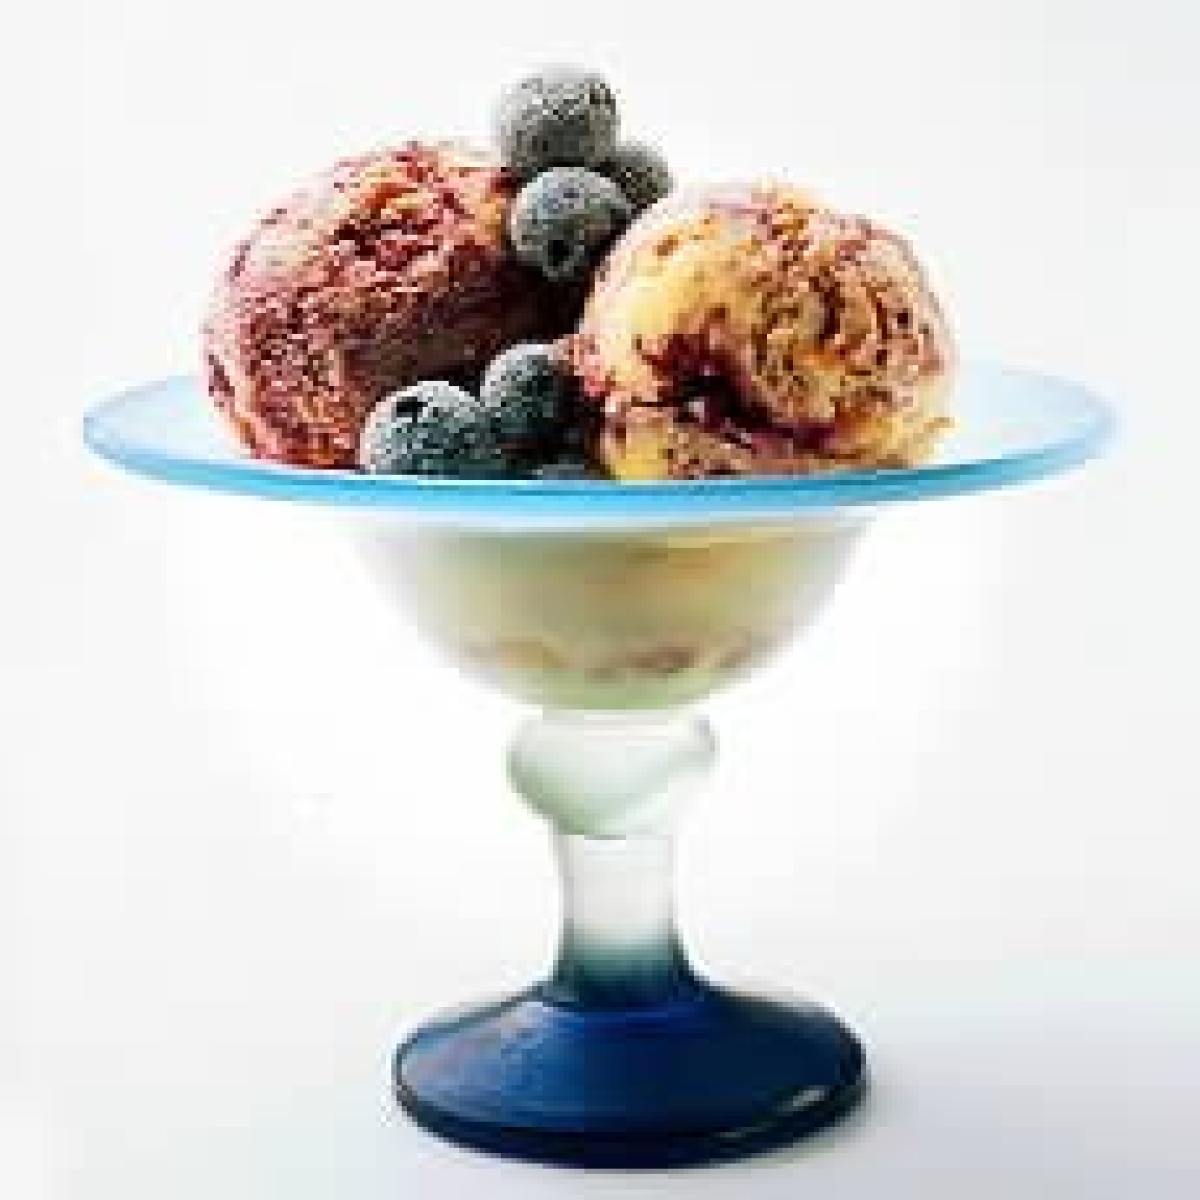 A picture of Delia's Blueberry Crumble Fromage Frais Ice Cream recipe